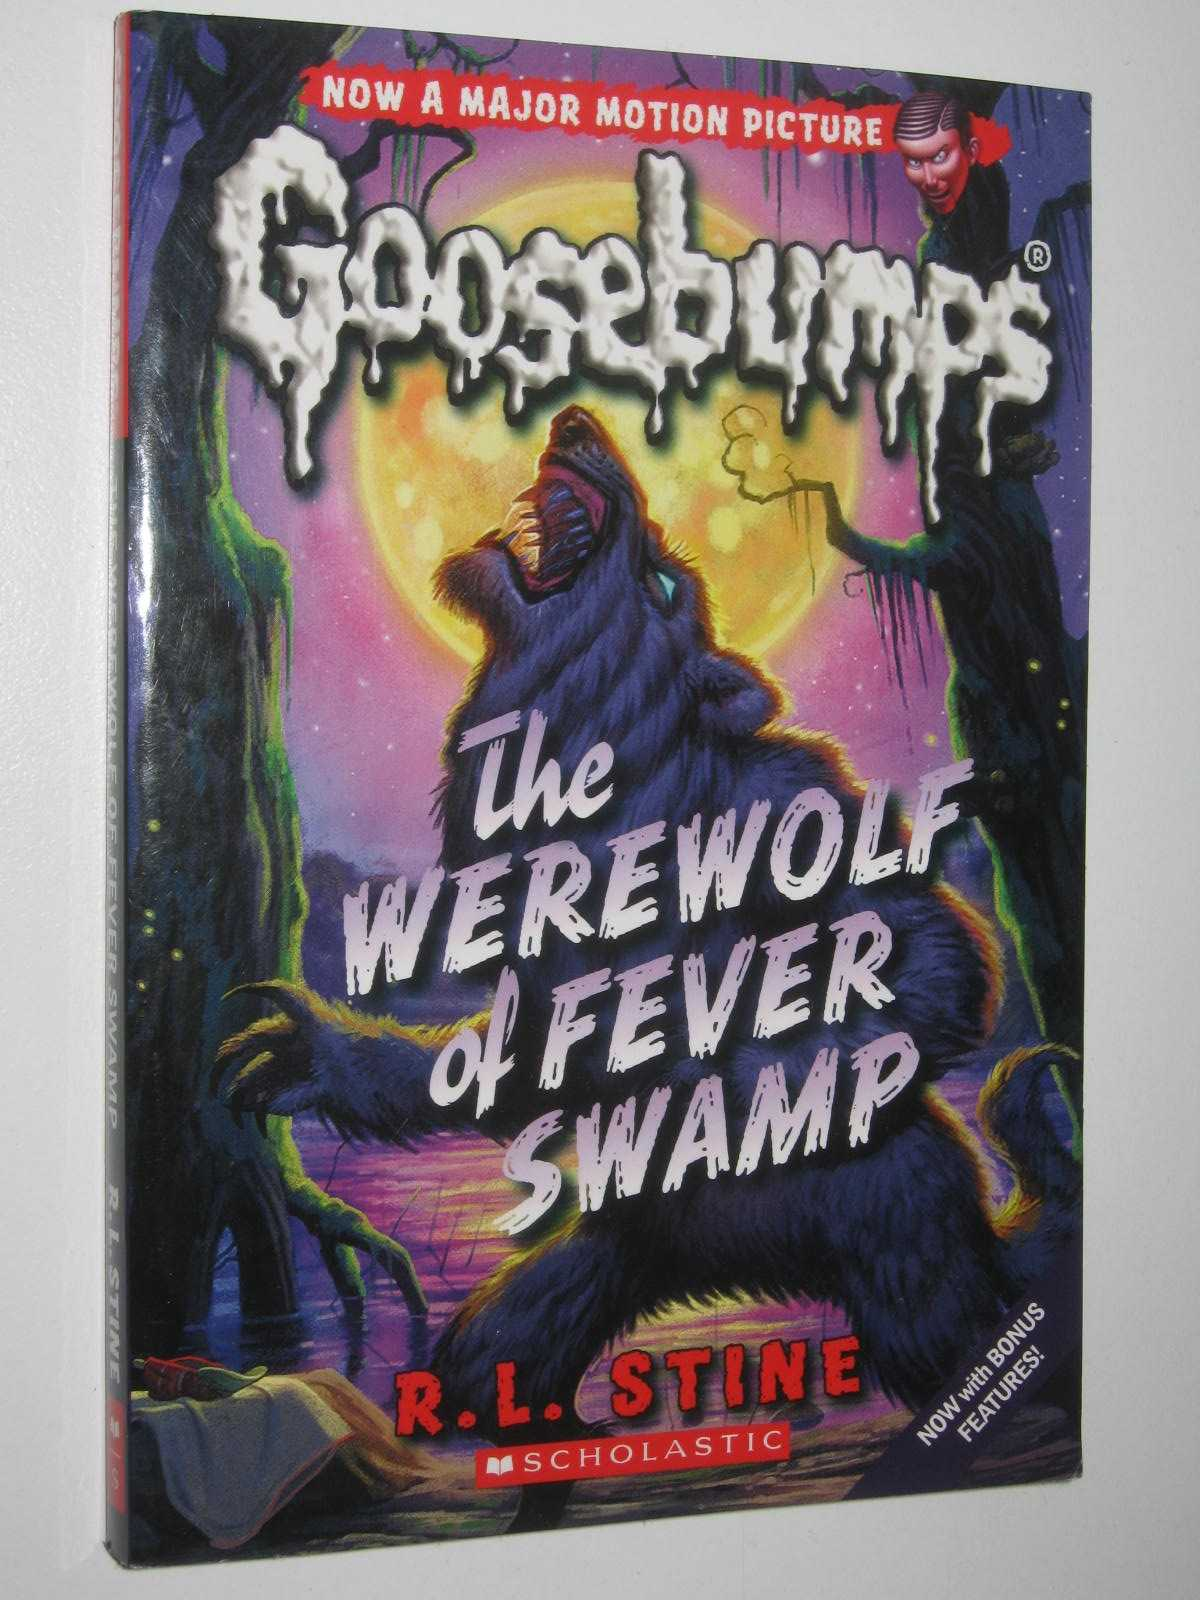 Image for The Werewolf of Fever Swamp - Goosebumps Series #11